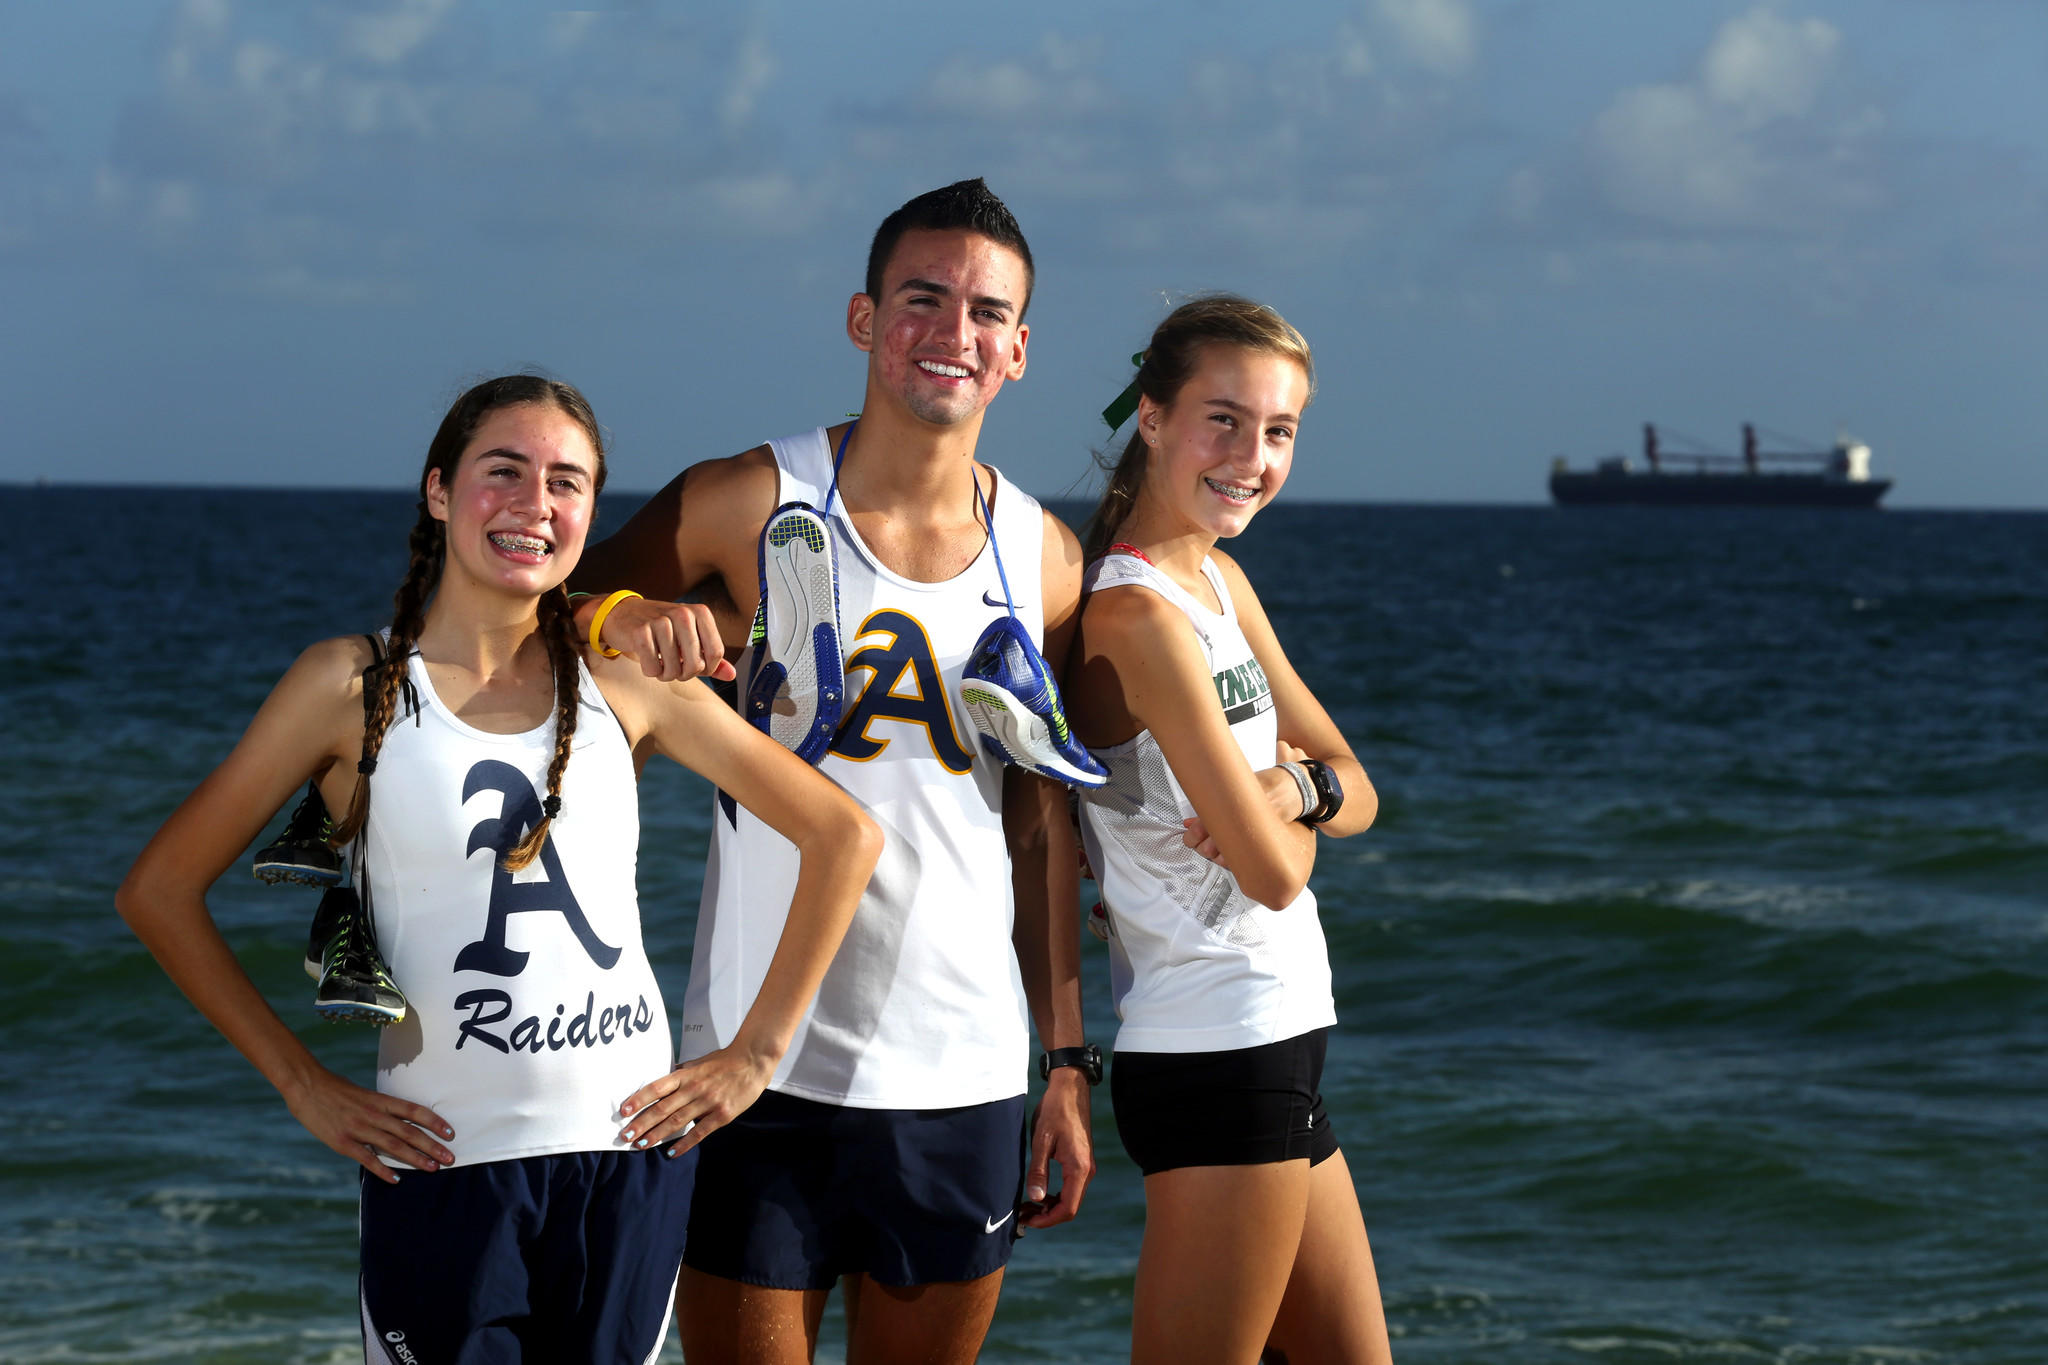 Cross country runners of the year: Alexa Cruz, Manuel Velasquez, Julia Montgomery.